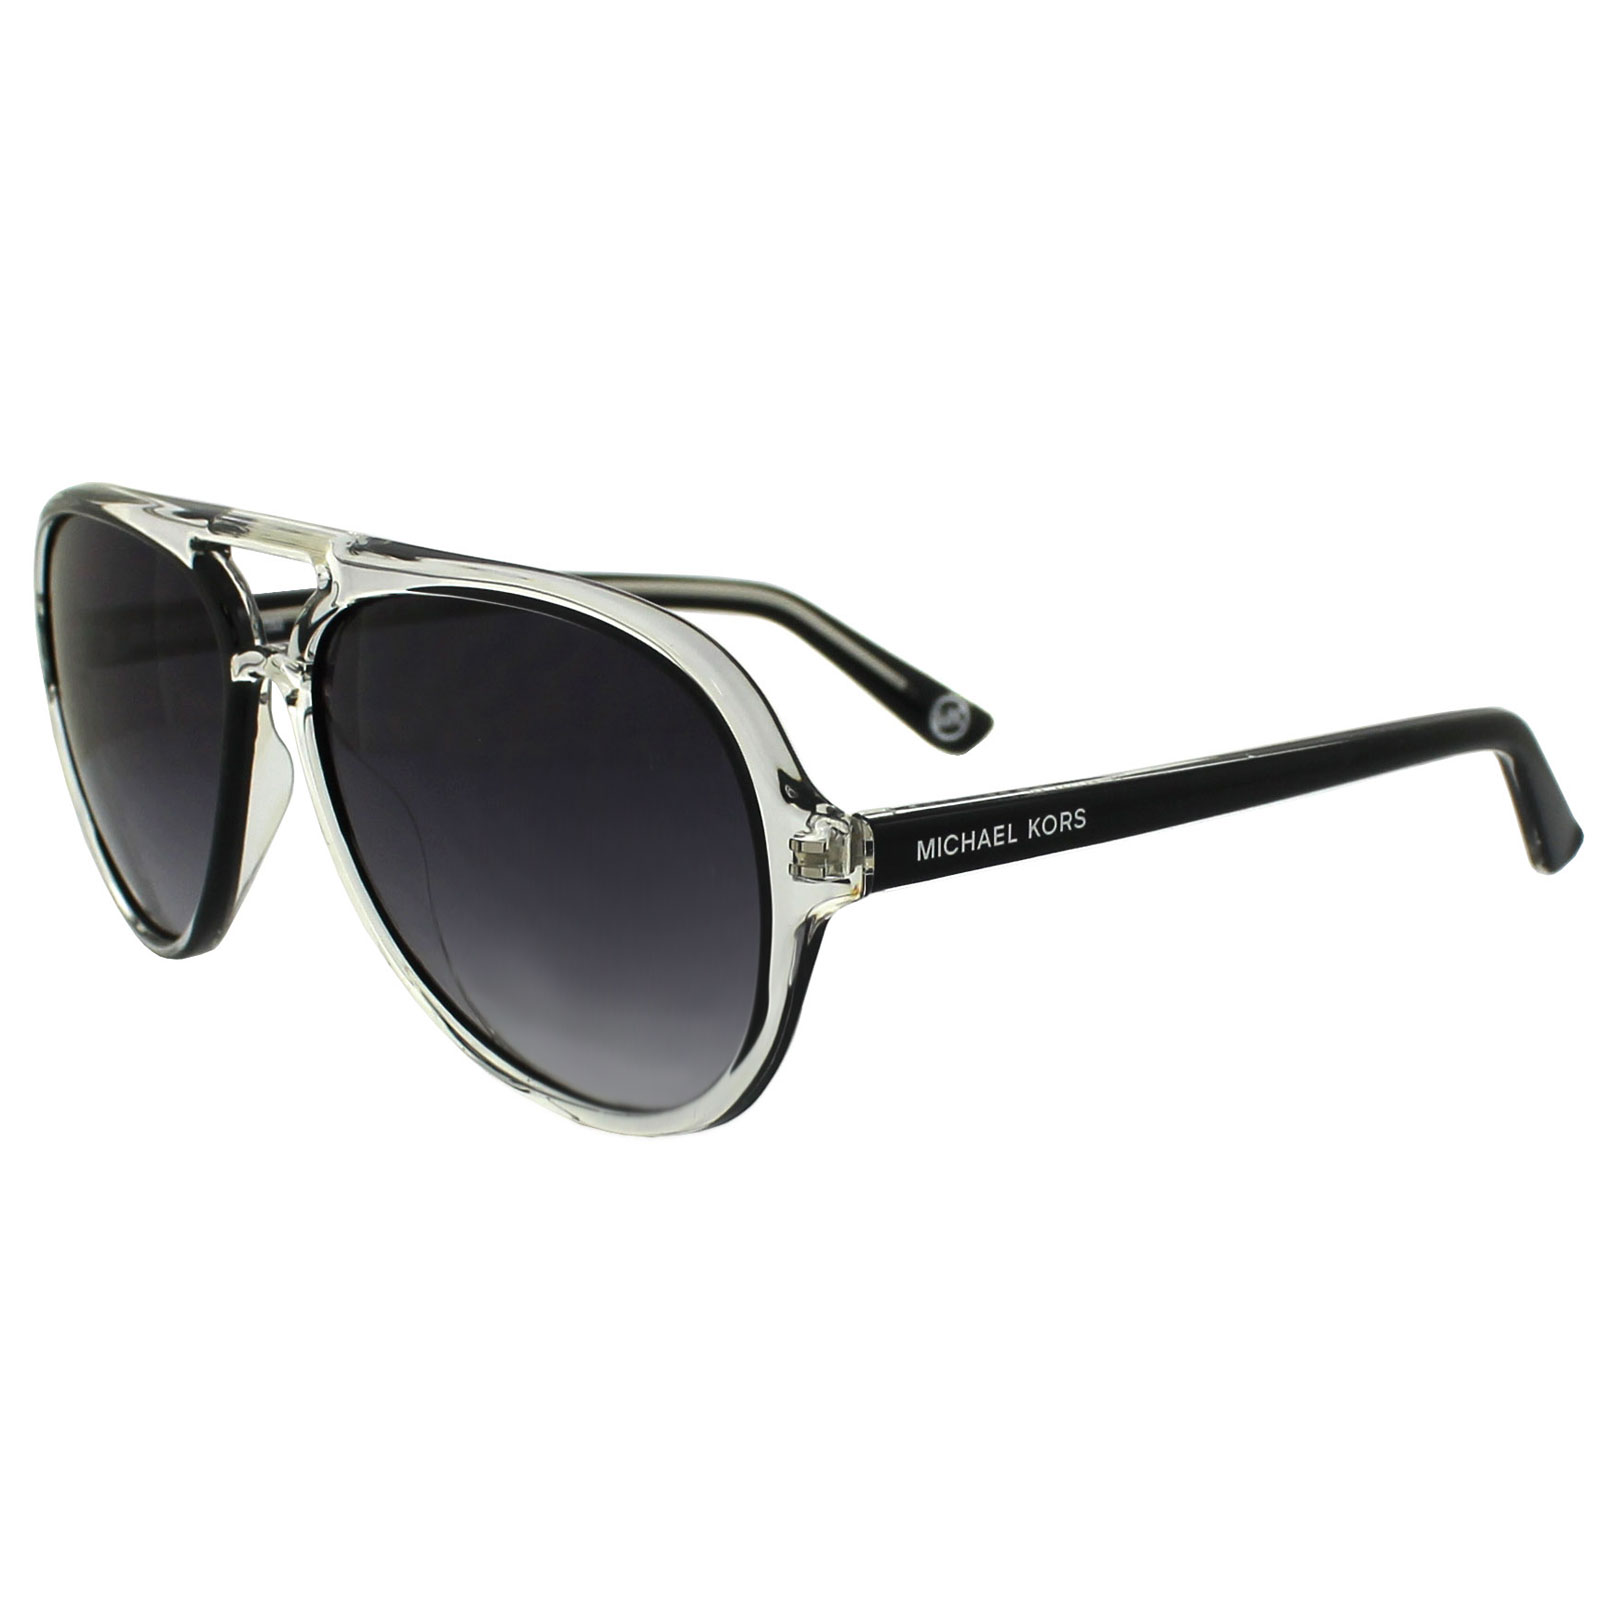 67321943a15b Sentinel Michael Kors Sunglasses Caicos M2811S 001 Black Crystal Grey  Gradient